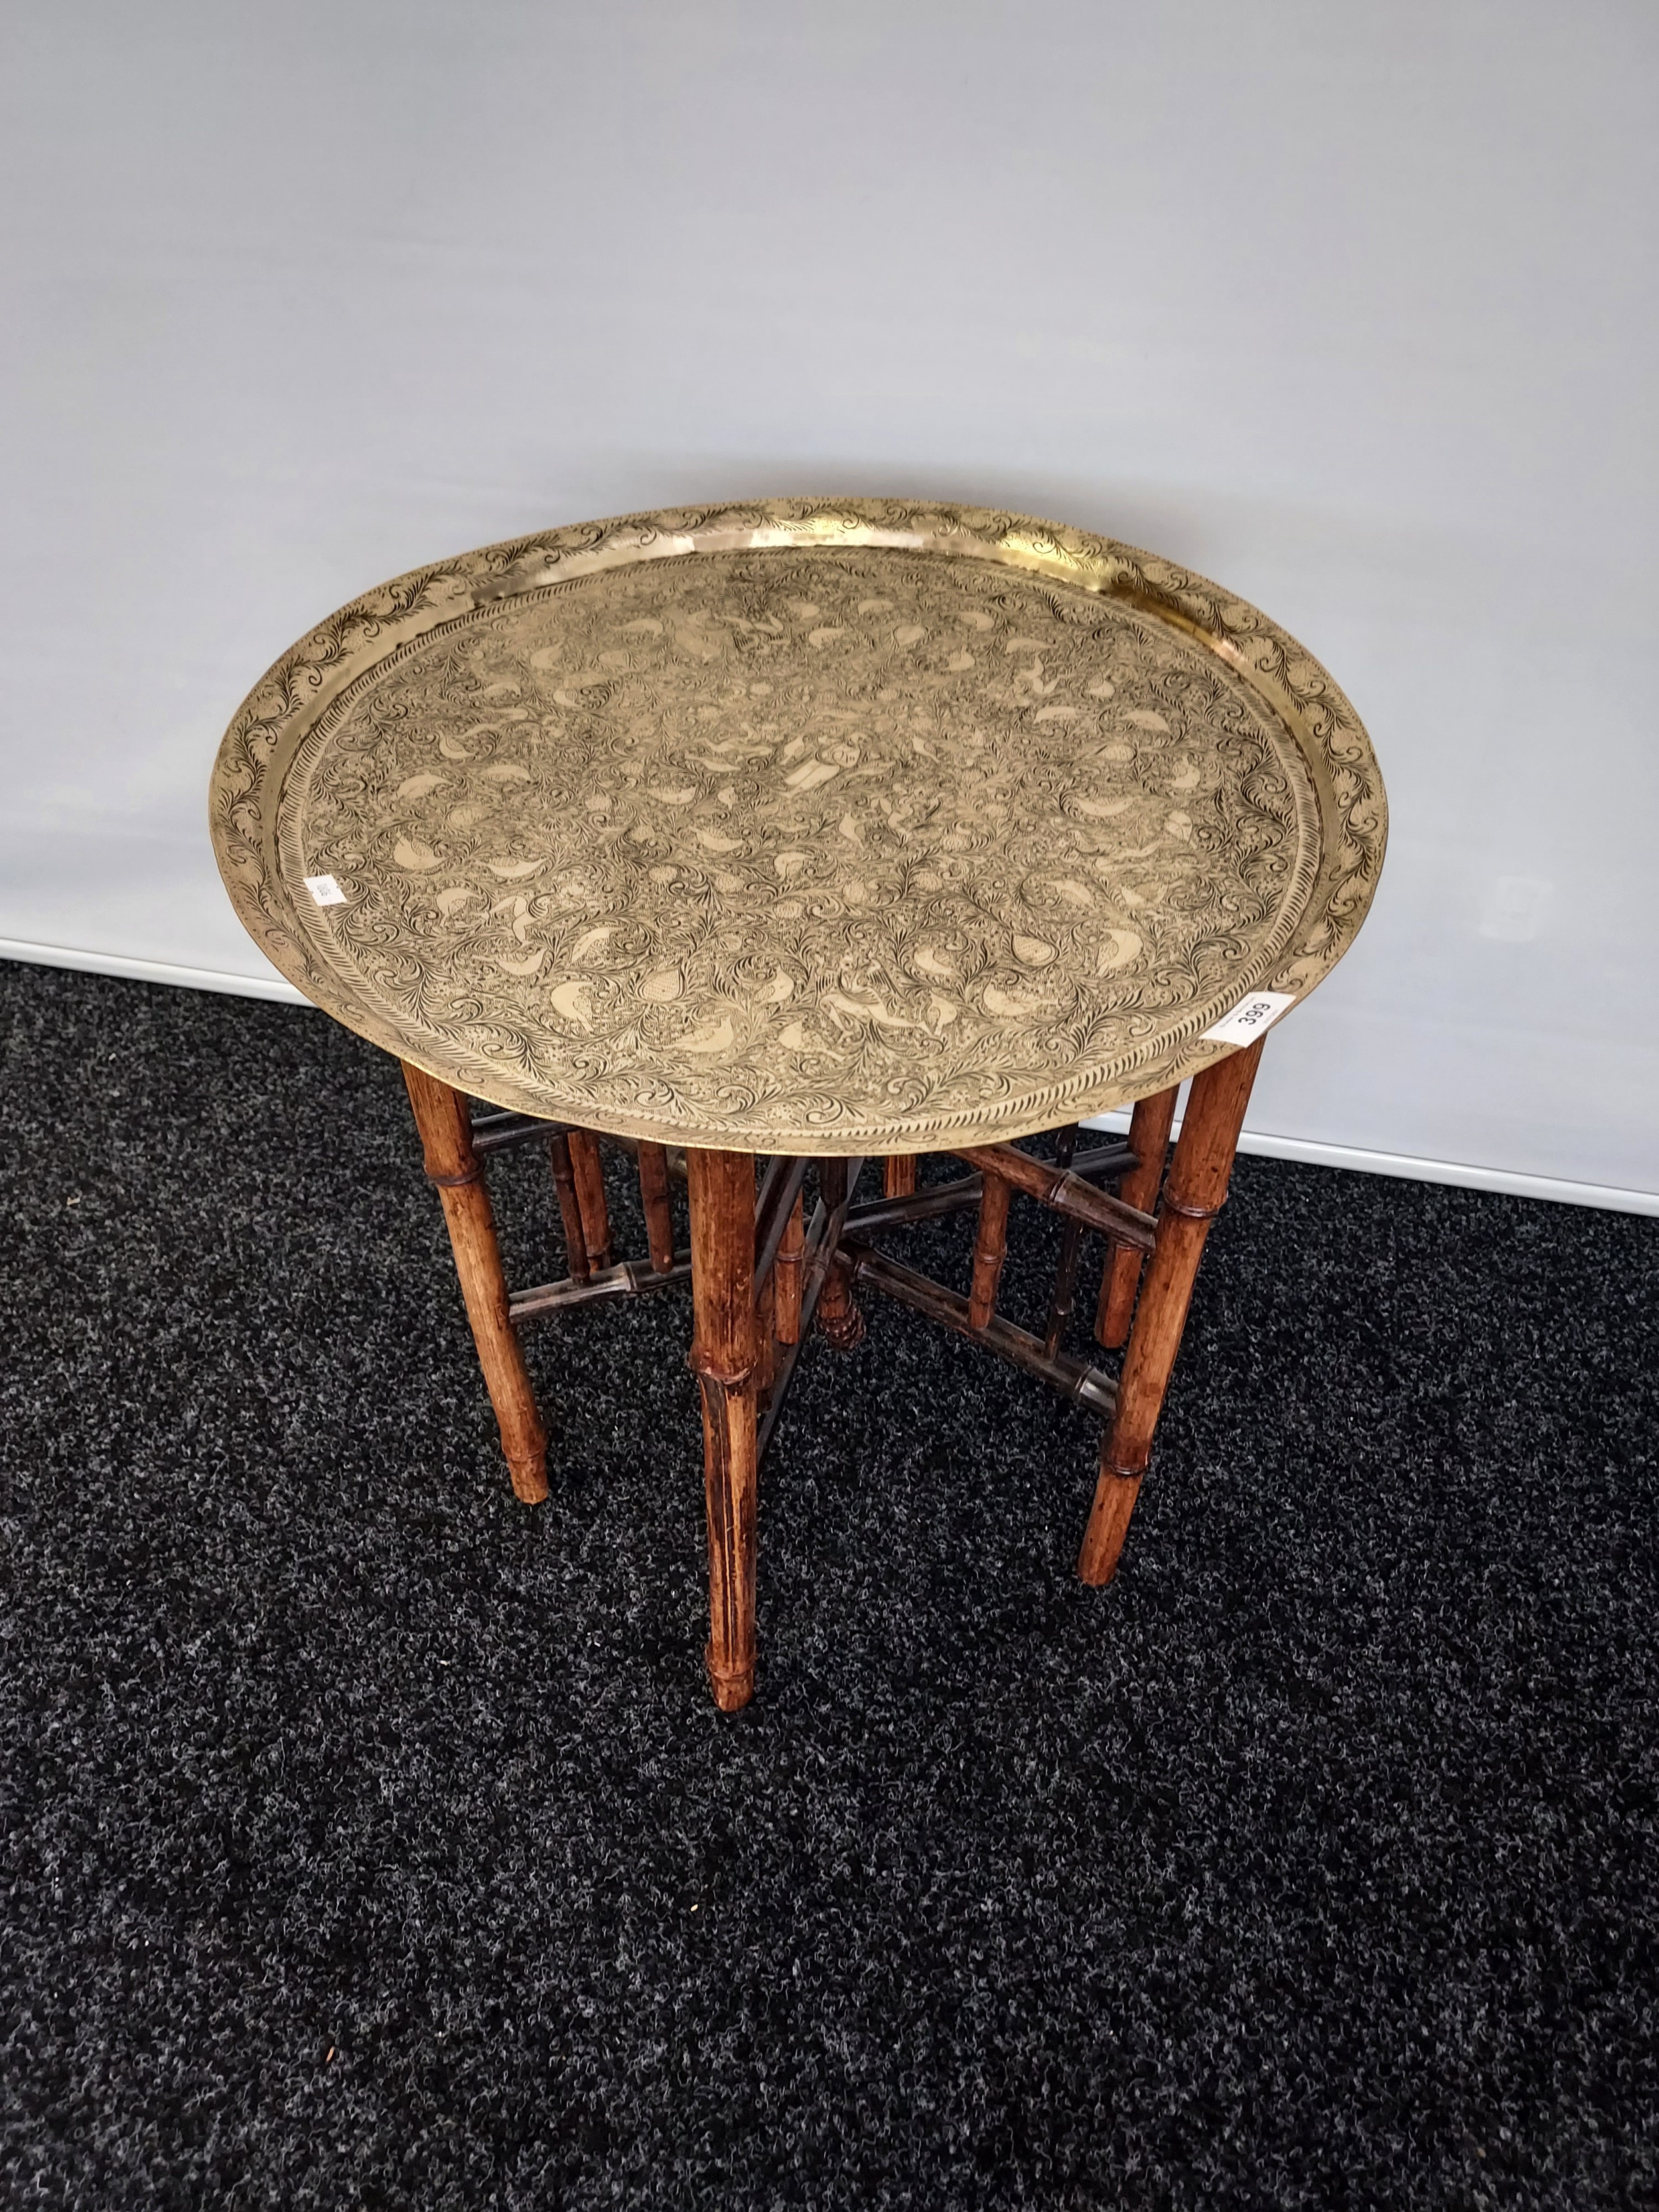 Antique Indian/ Benares decorative brass top wit folding bamboo table legs, Decoratively carved. - Image 3 of 4